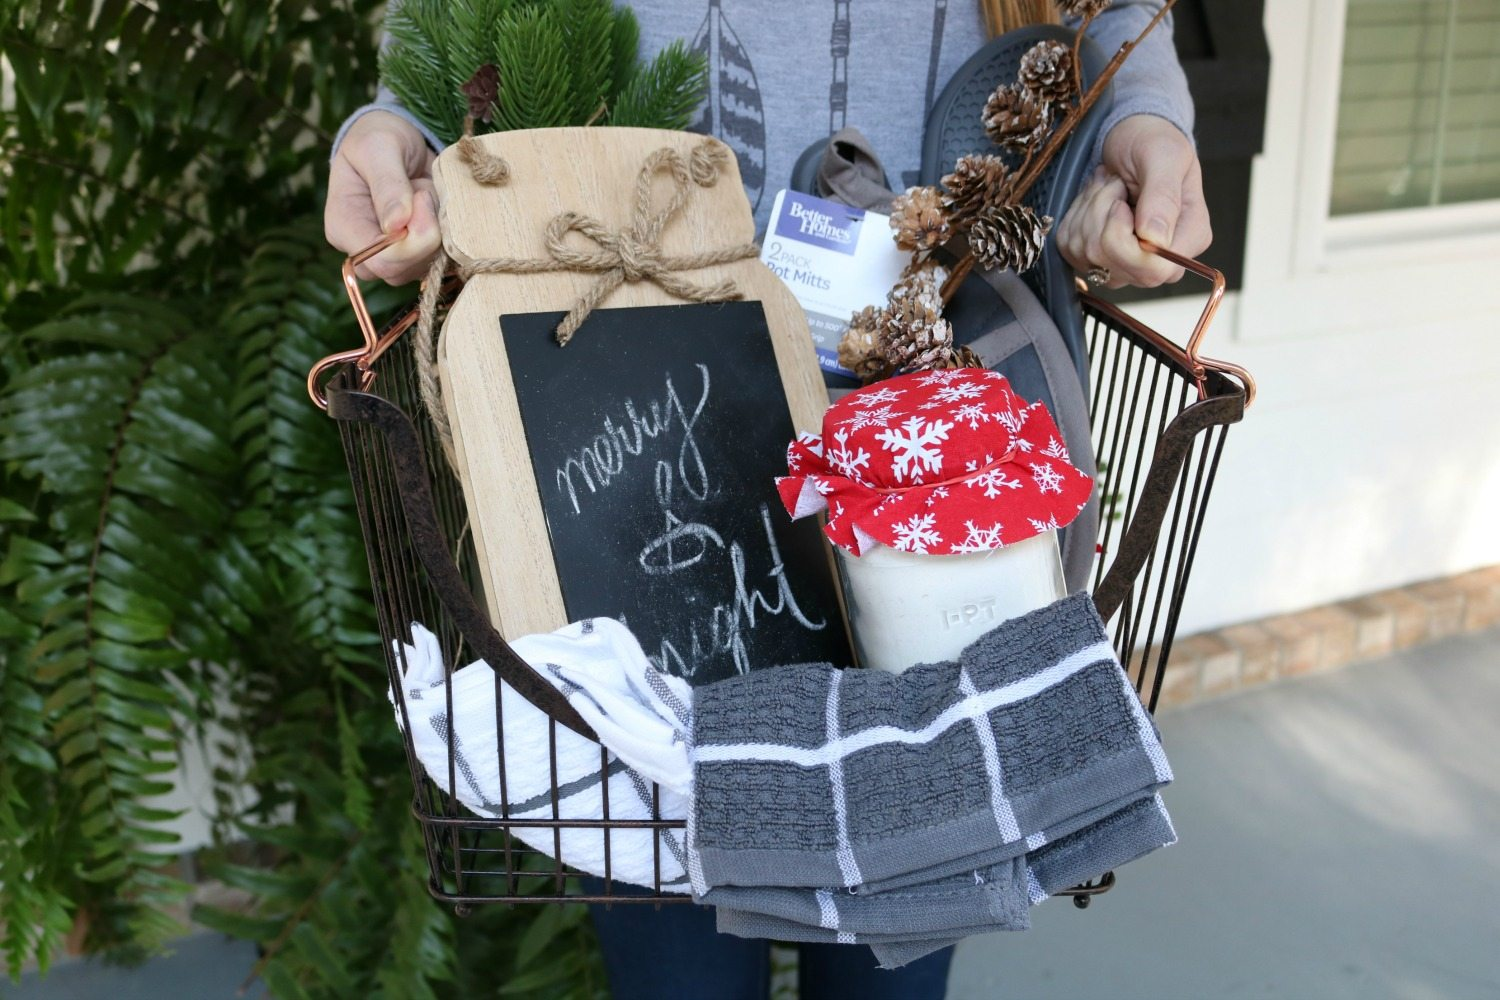 Basket filled with baking items for Christmas